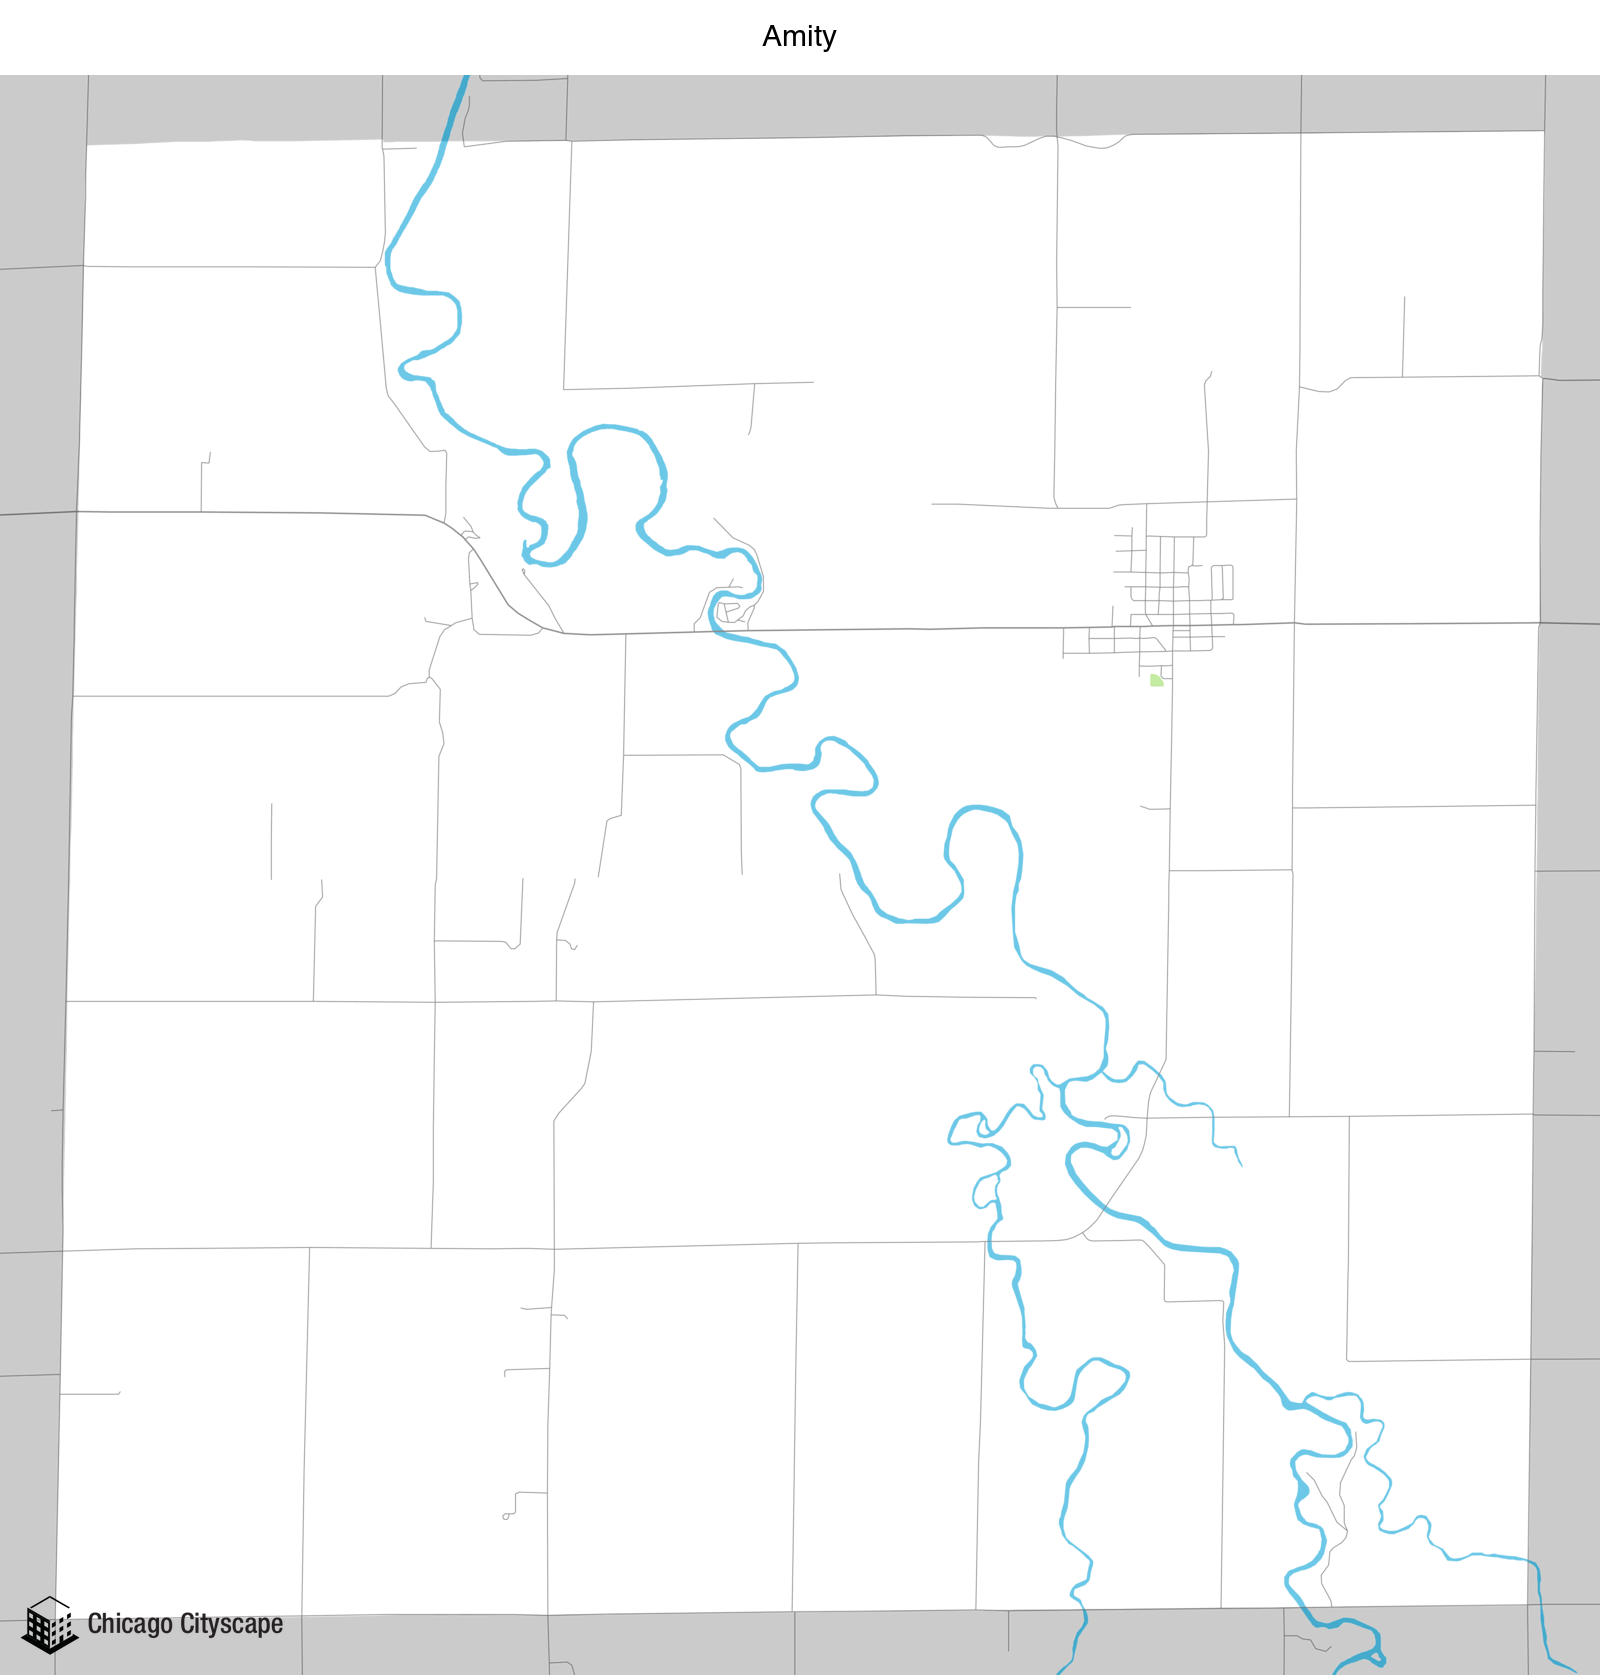 Map Of Livingston County, Map Of Amity Designed By Chicago Cityscape, Map Of Livingston County